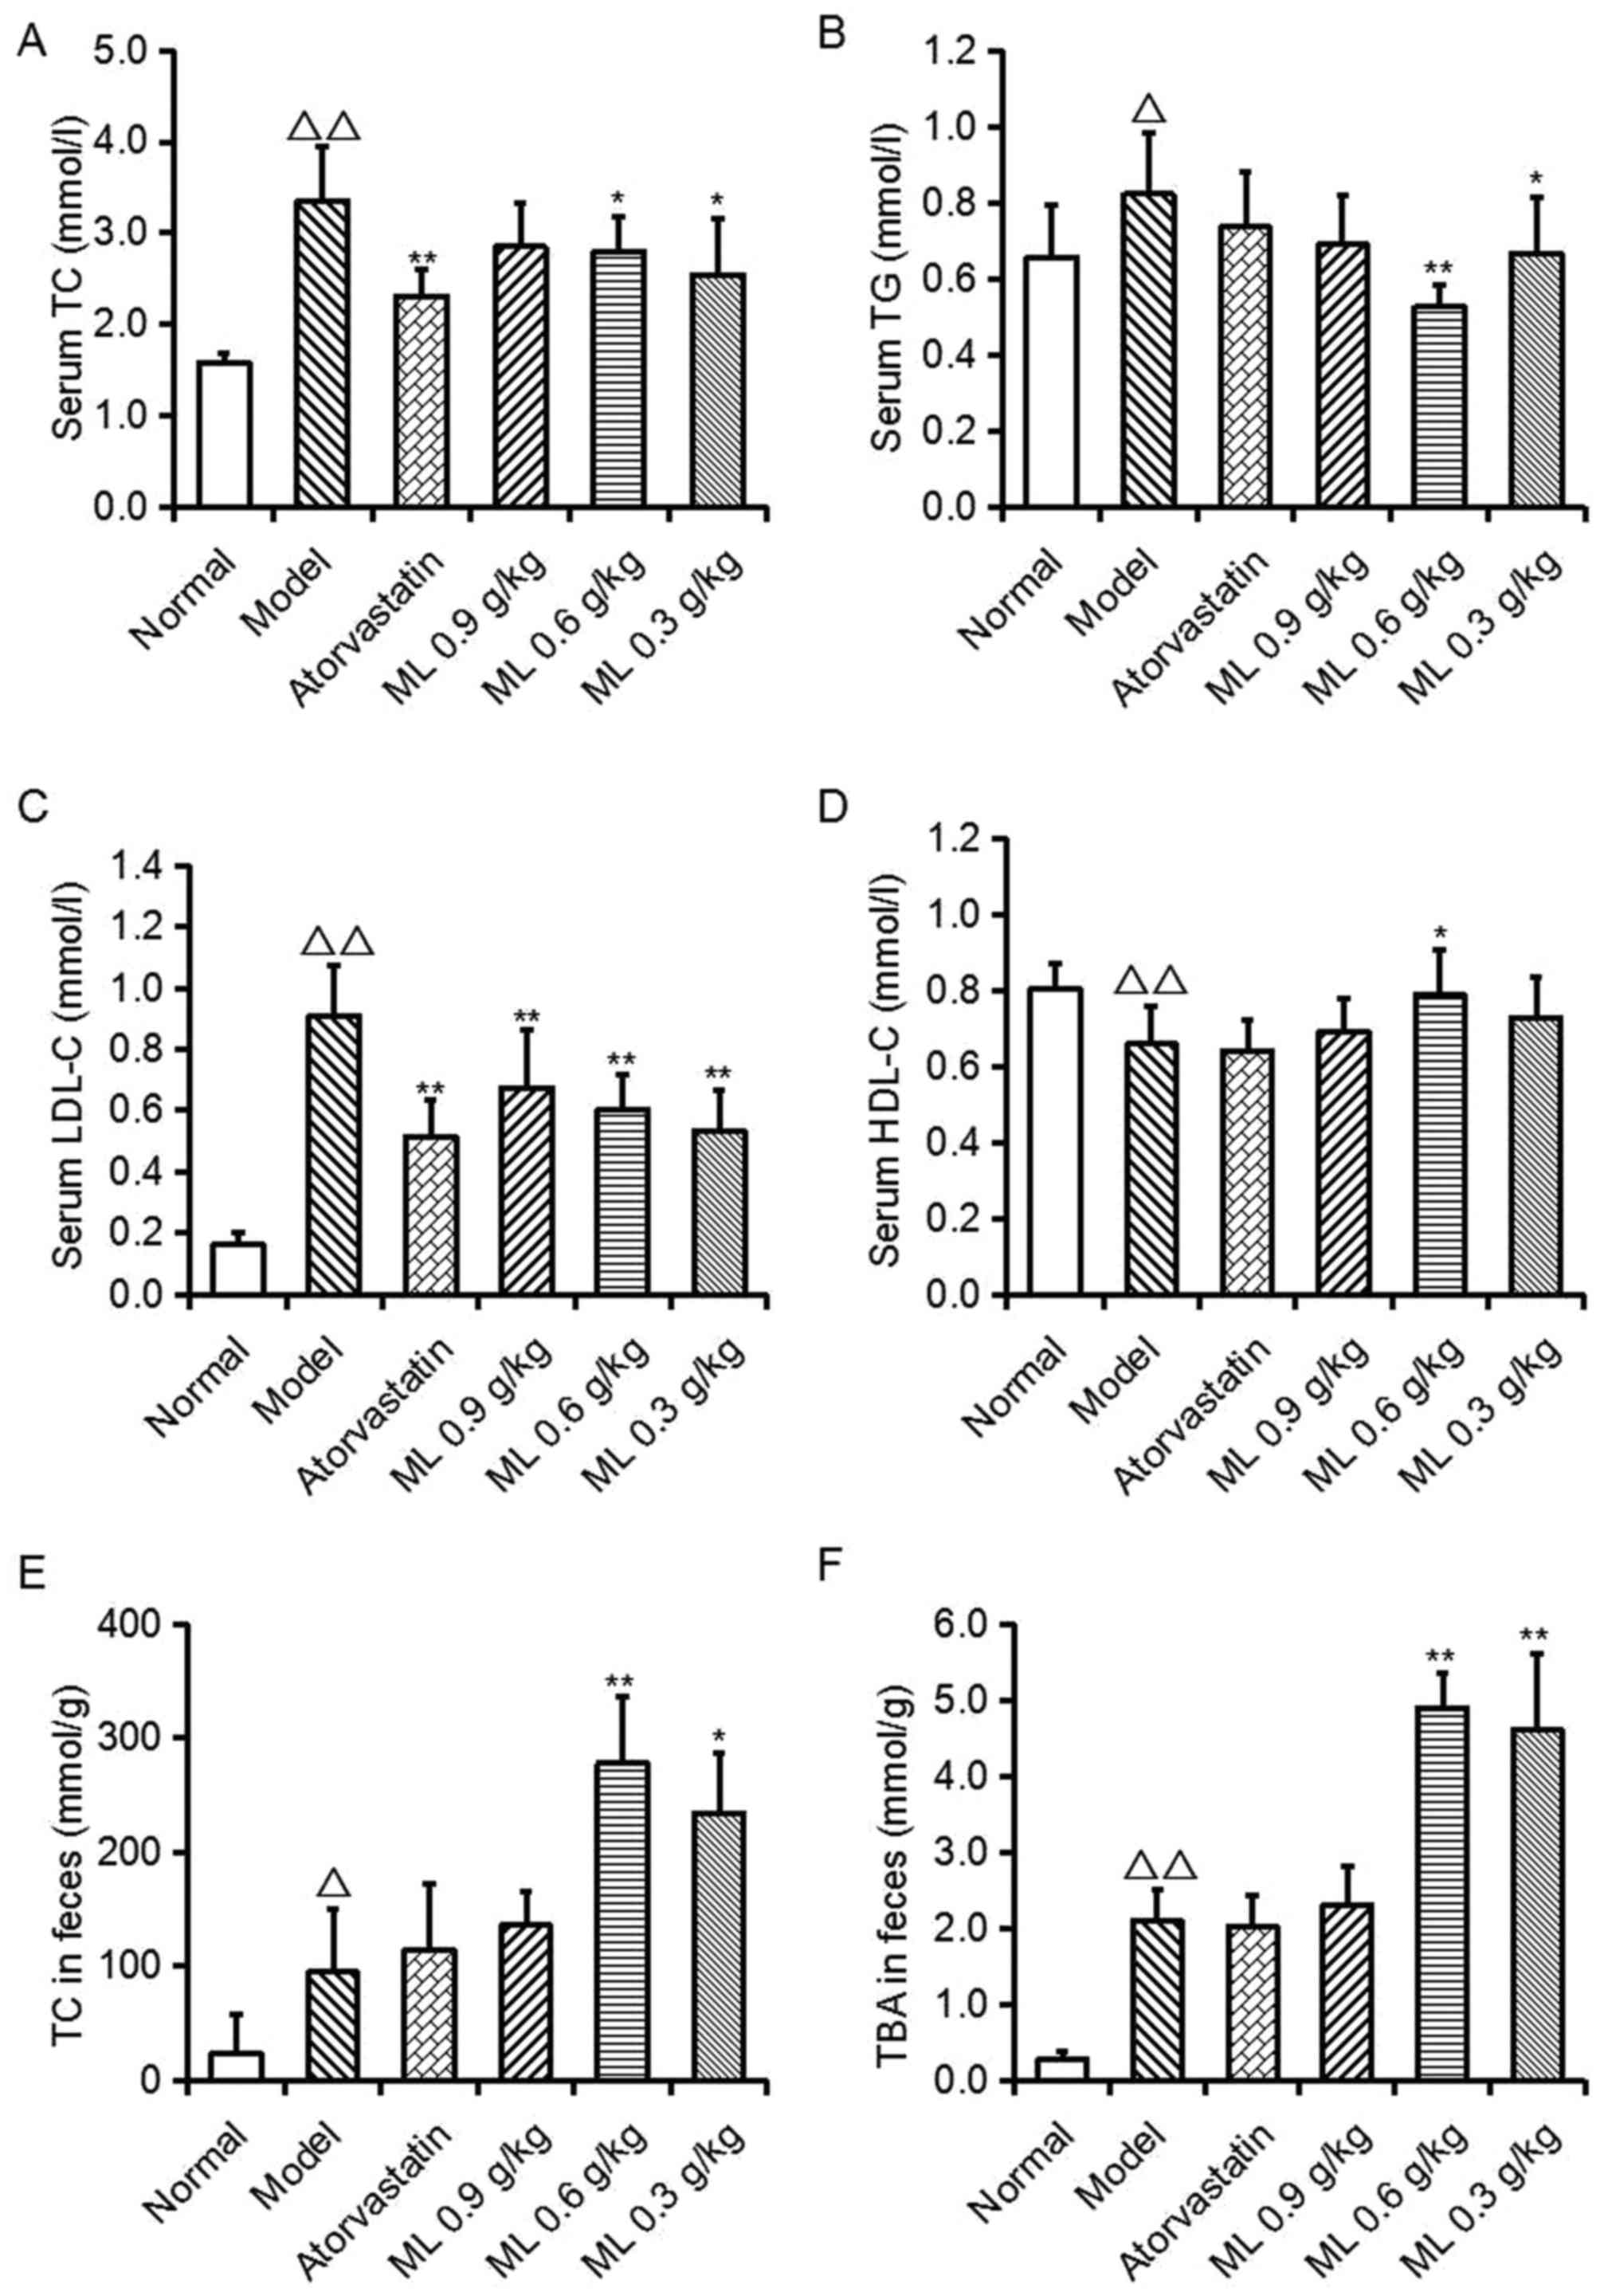 Beneficial effects of mangiferin on hyperlipidemia in high-fat-fed hamsters.